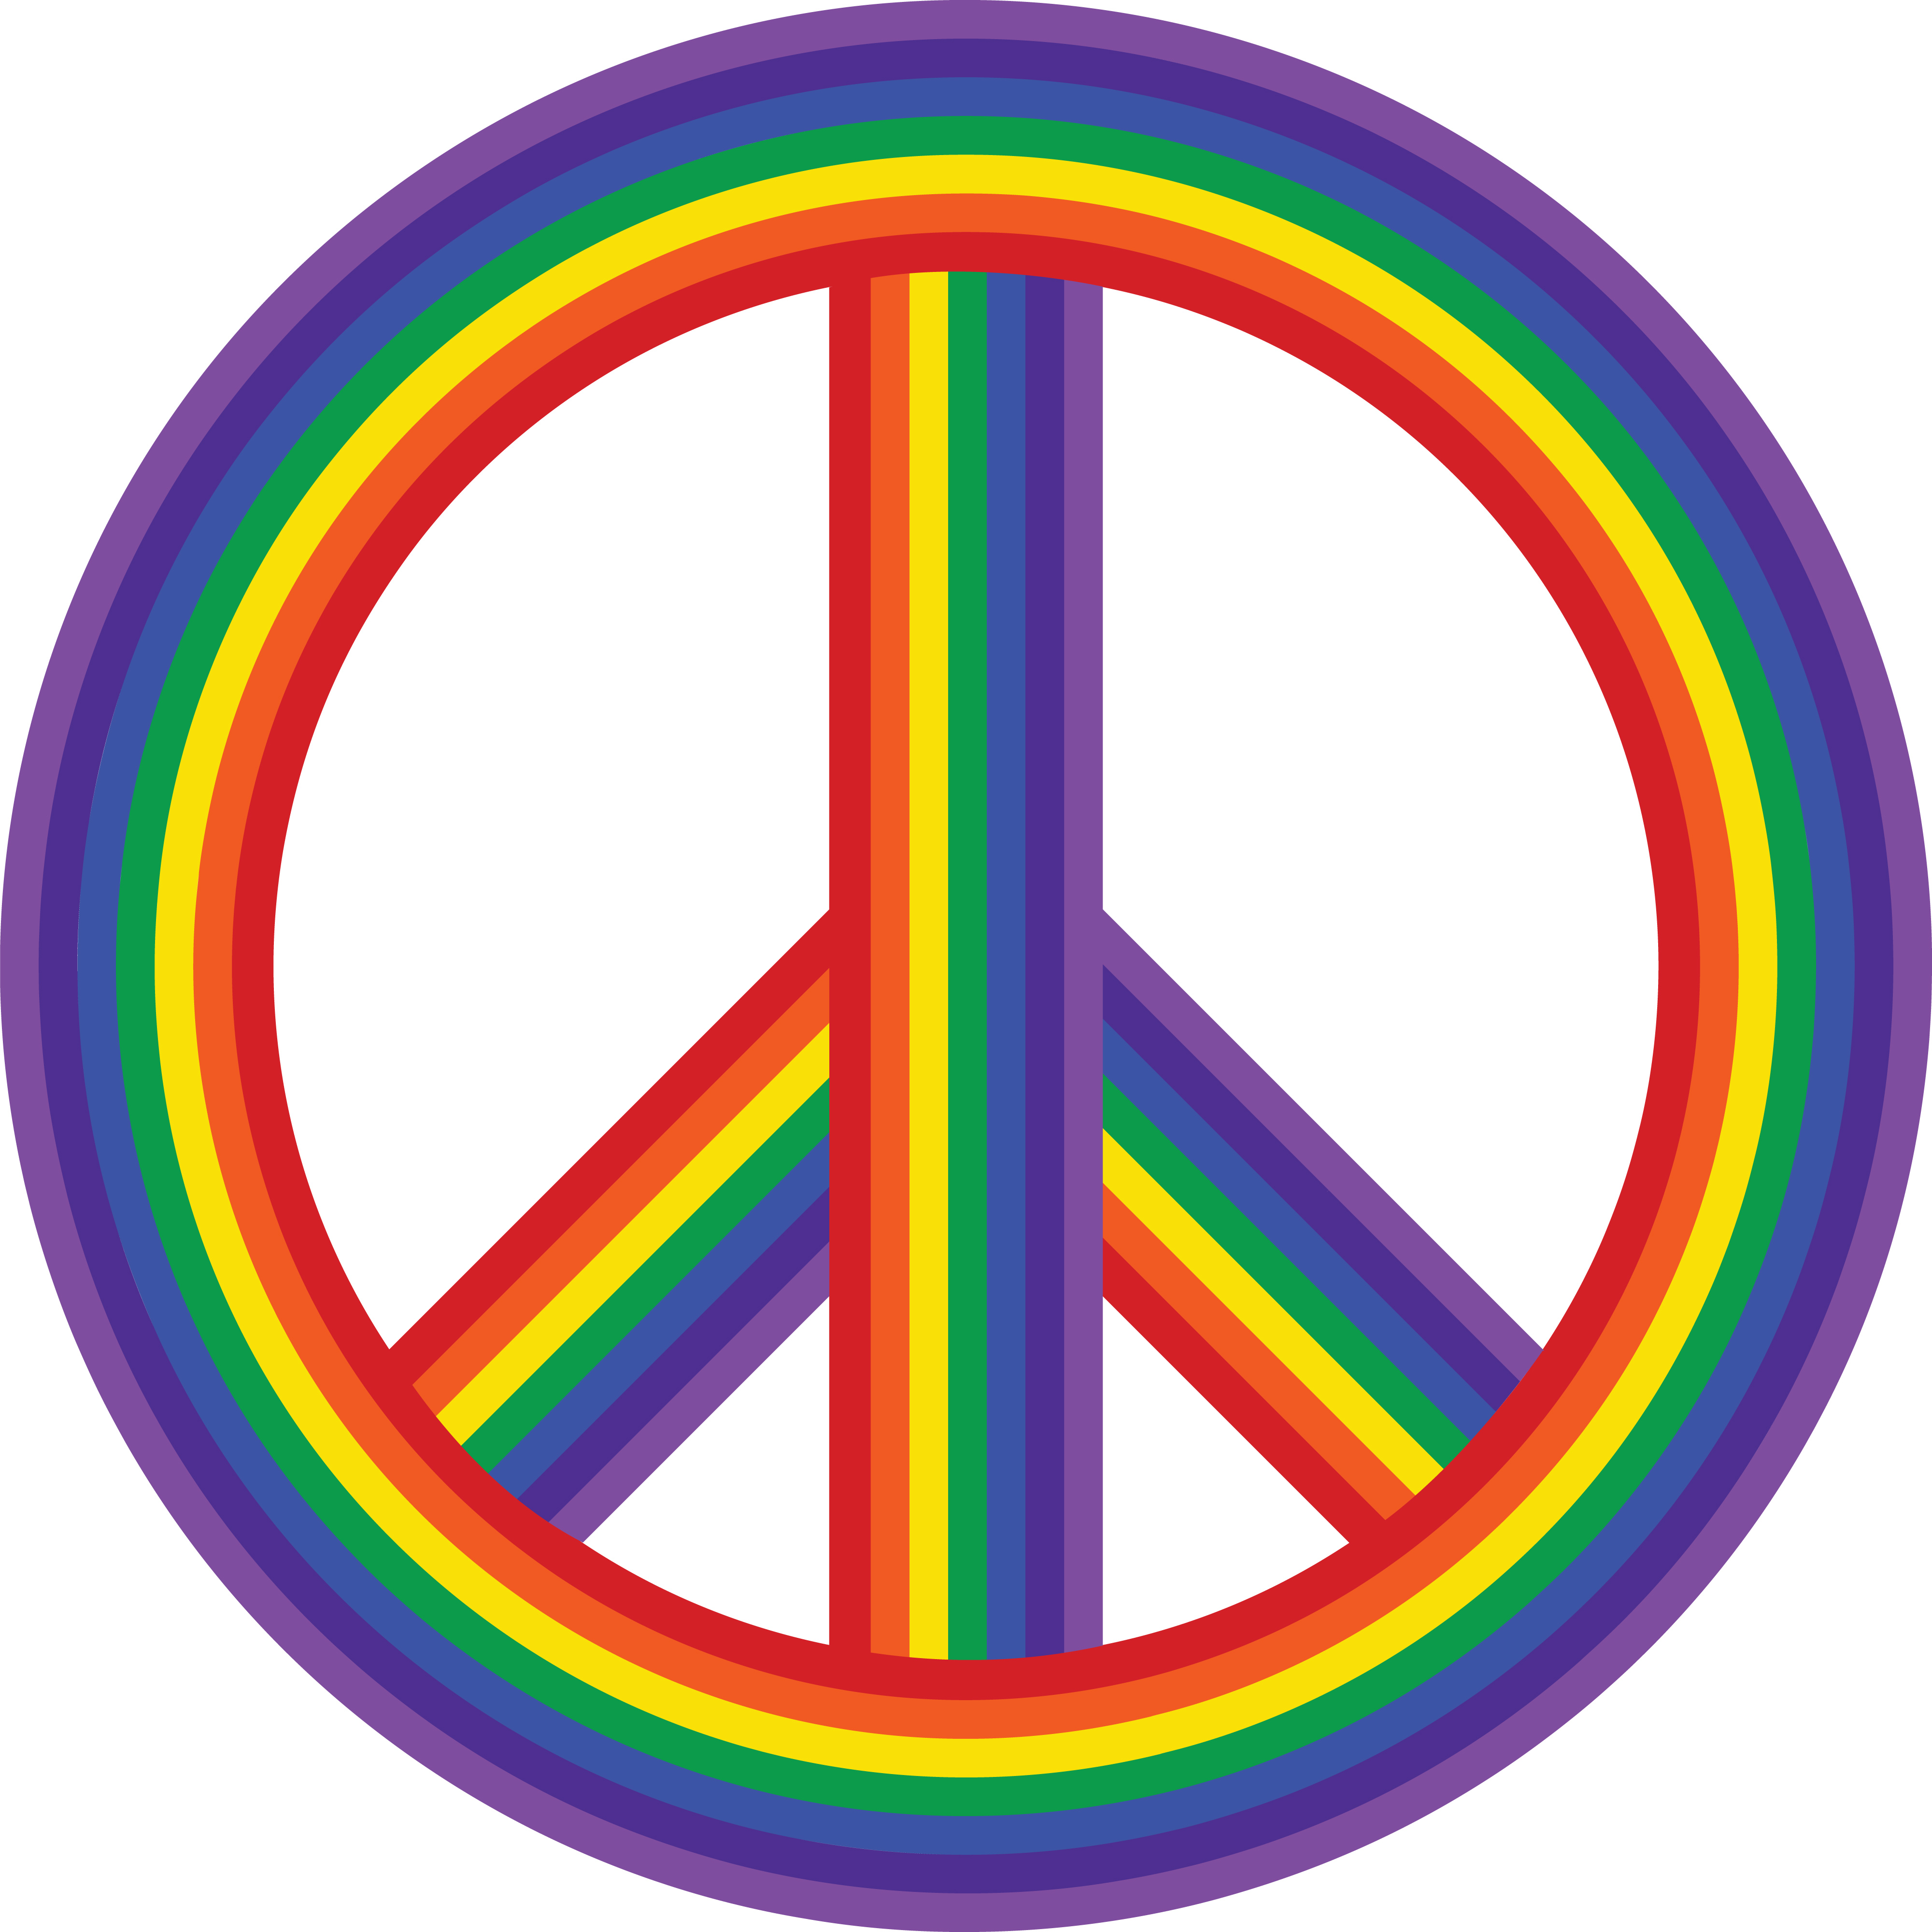 Clipart of a rainbow peace symbol free clipart of a rainbow peace symbol 00011975 buycottarizona Choice Image